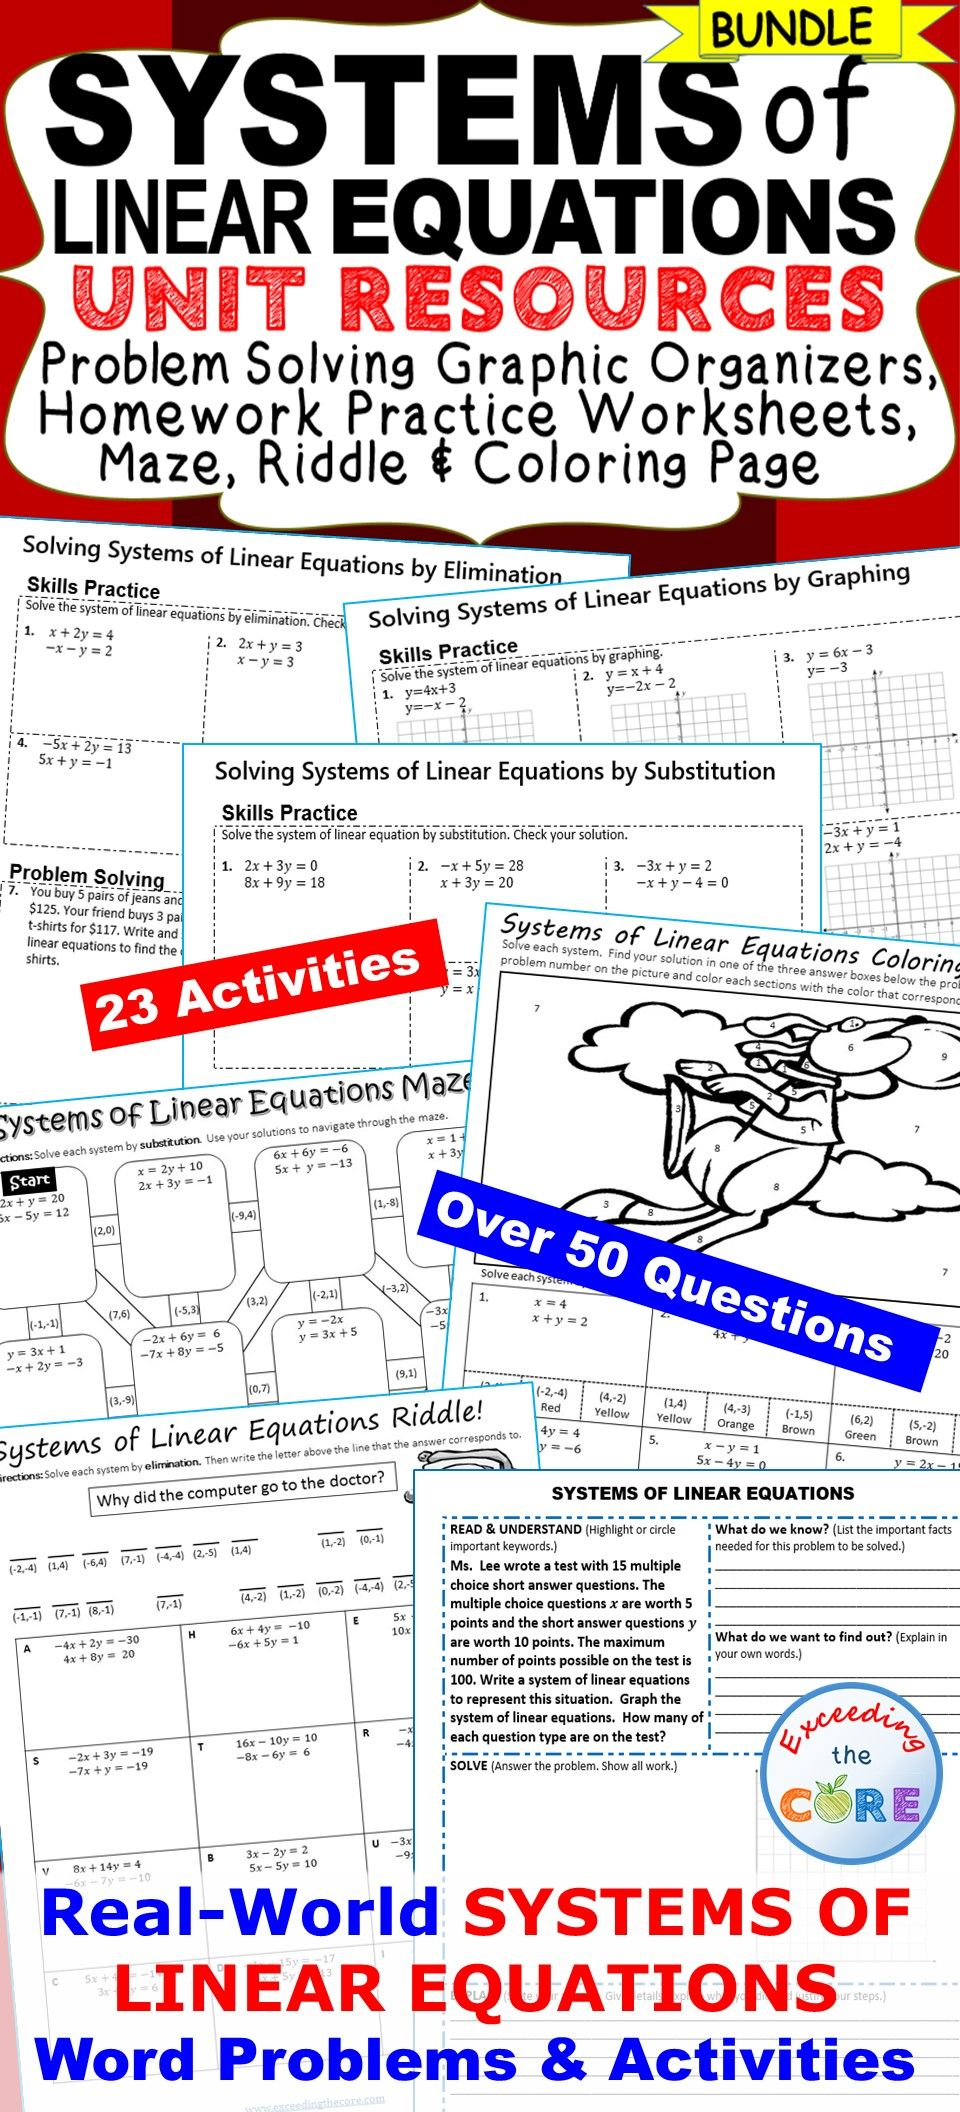 SYSTEMS OF LINEAR EQUATIONS Homework, Graphic Organizers